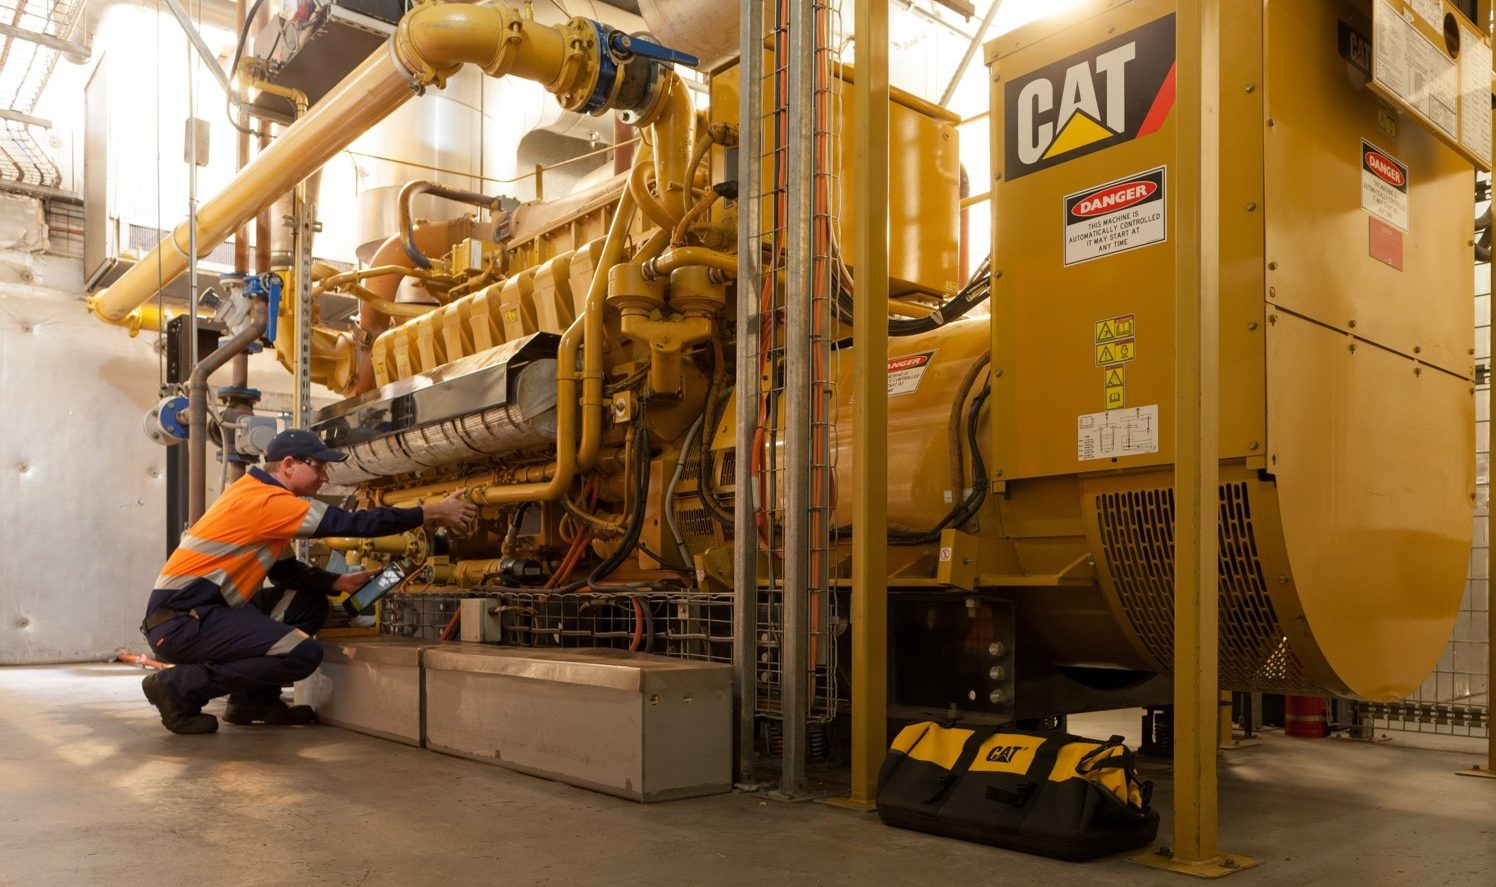 Truck Rental Nj >> Buy & Rent Used Cat Equipment for Sale - NJ, PA, Staten Island, and DE   Foley Inc